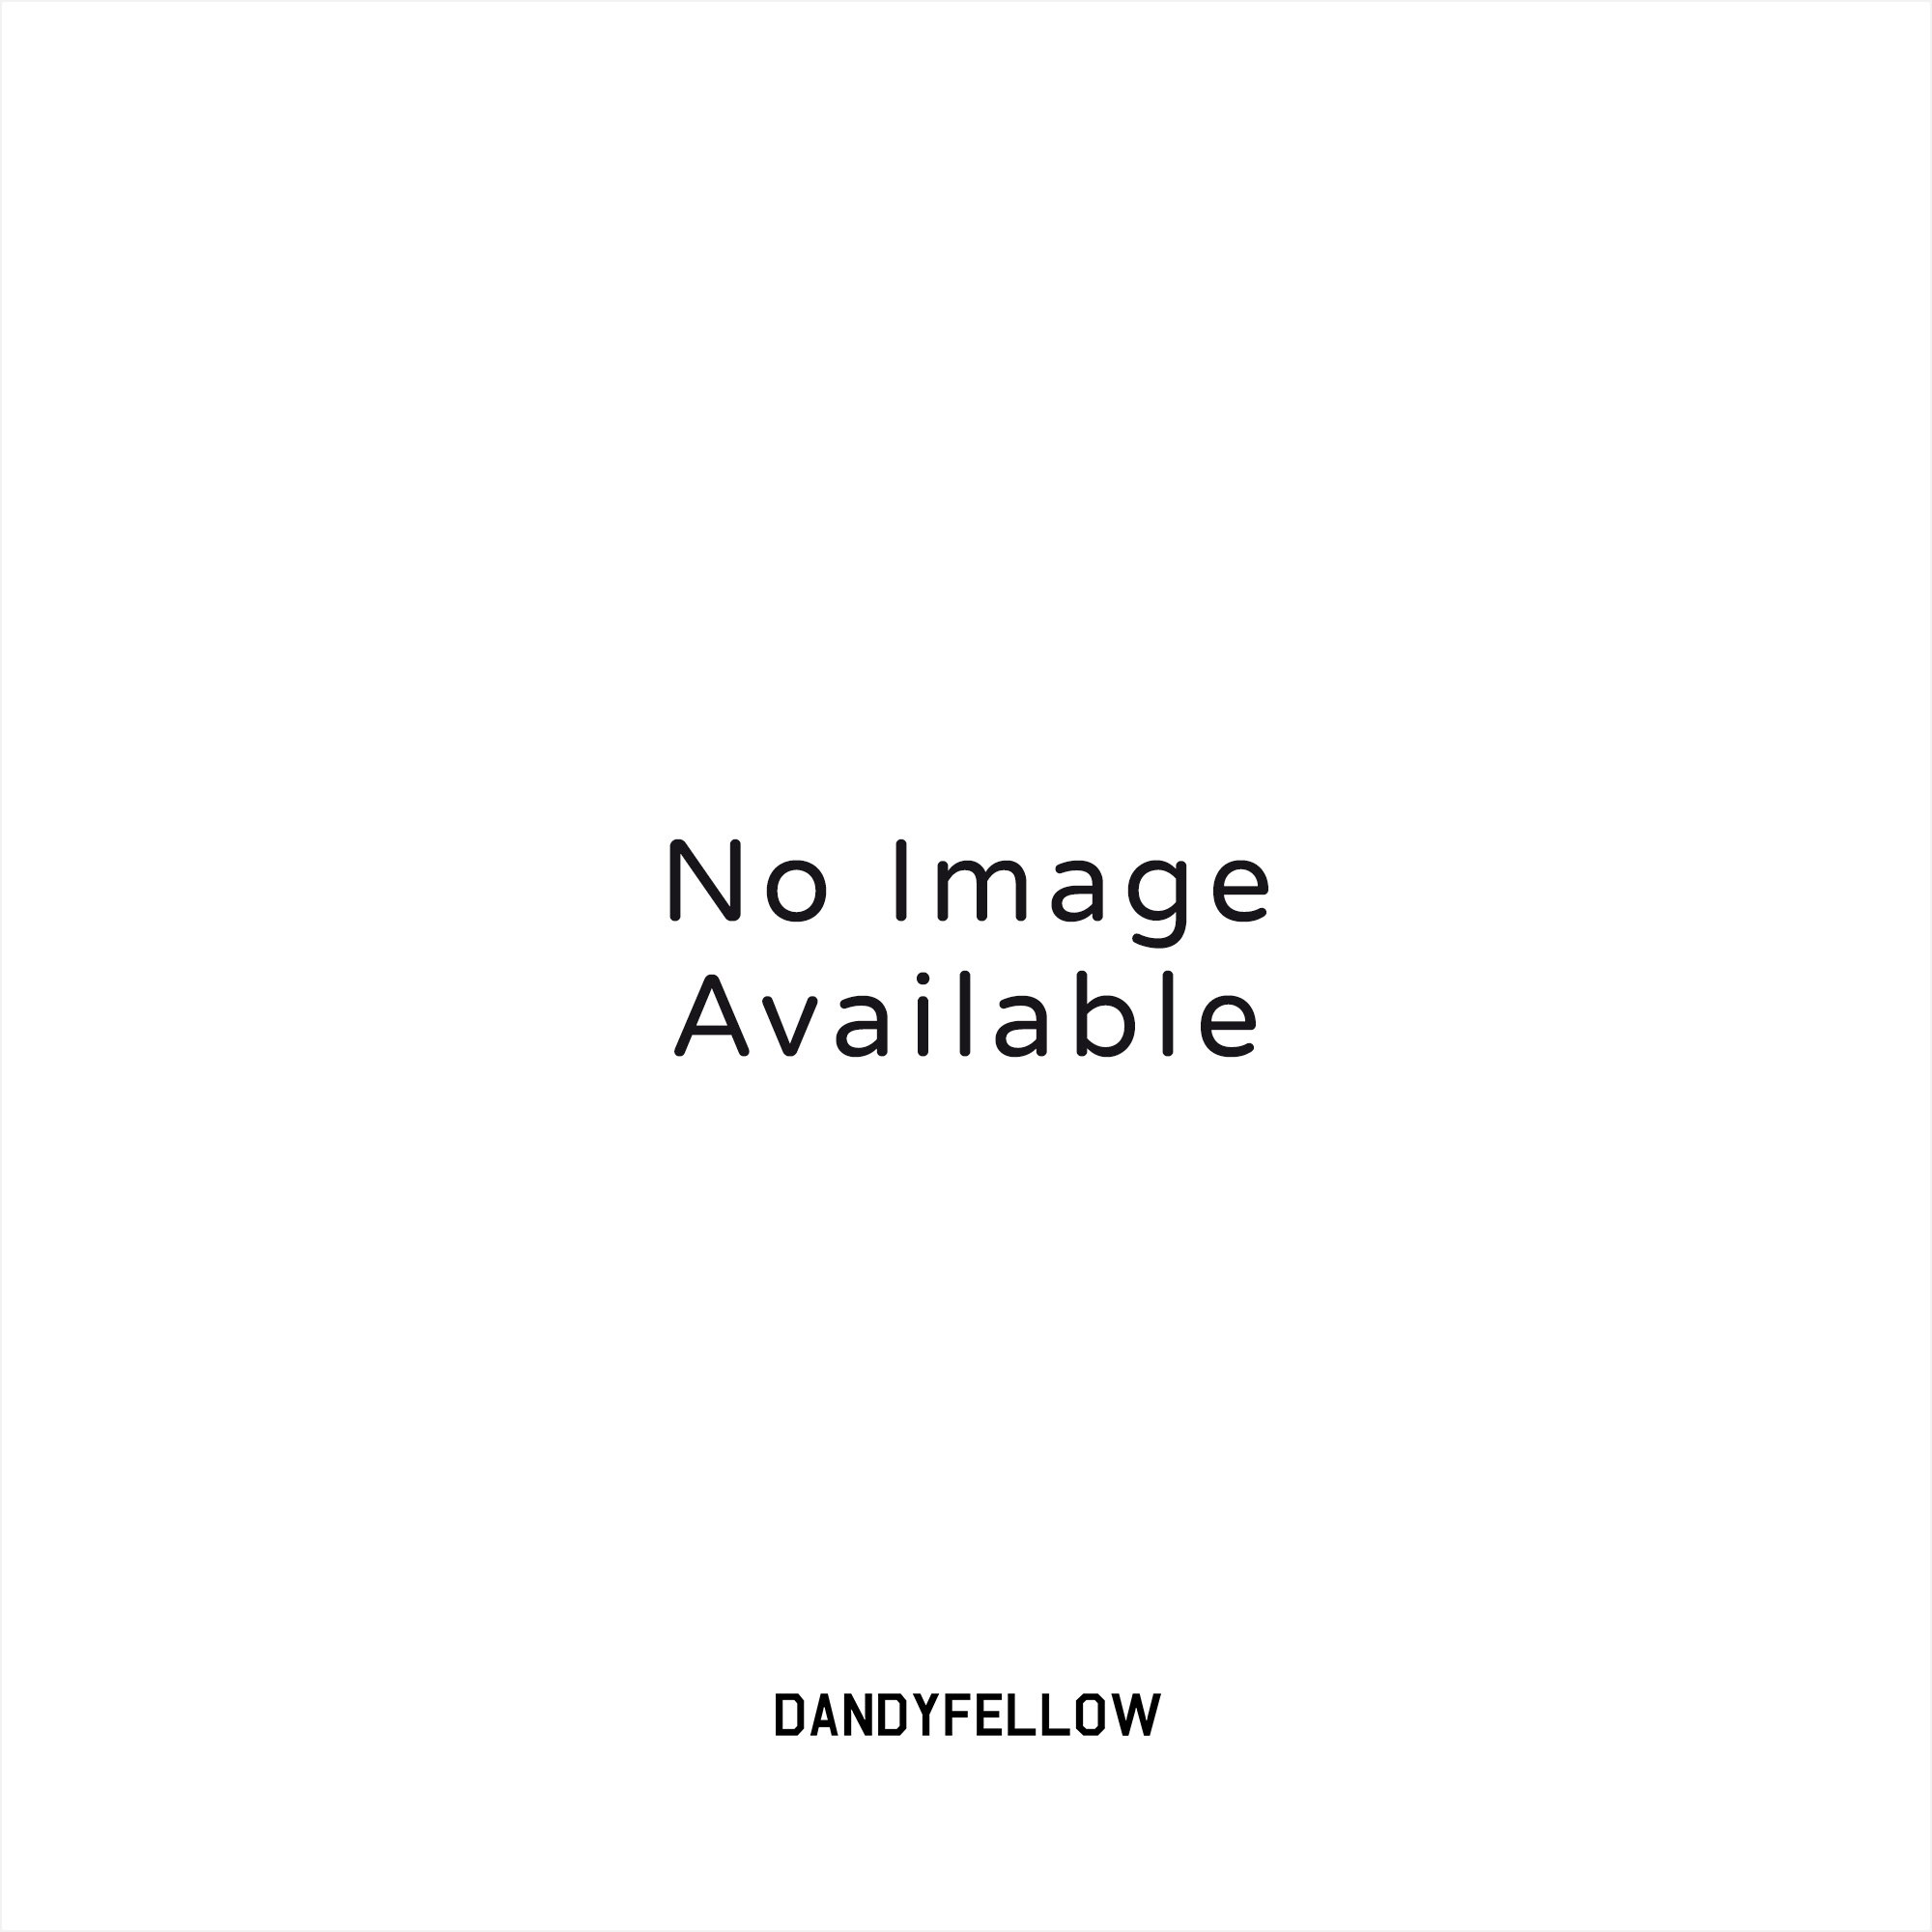 Levi's Vintage Bay Meadows Off White Rose Sweatshirt 21931-0003